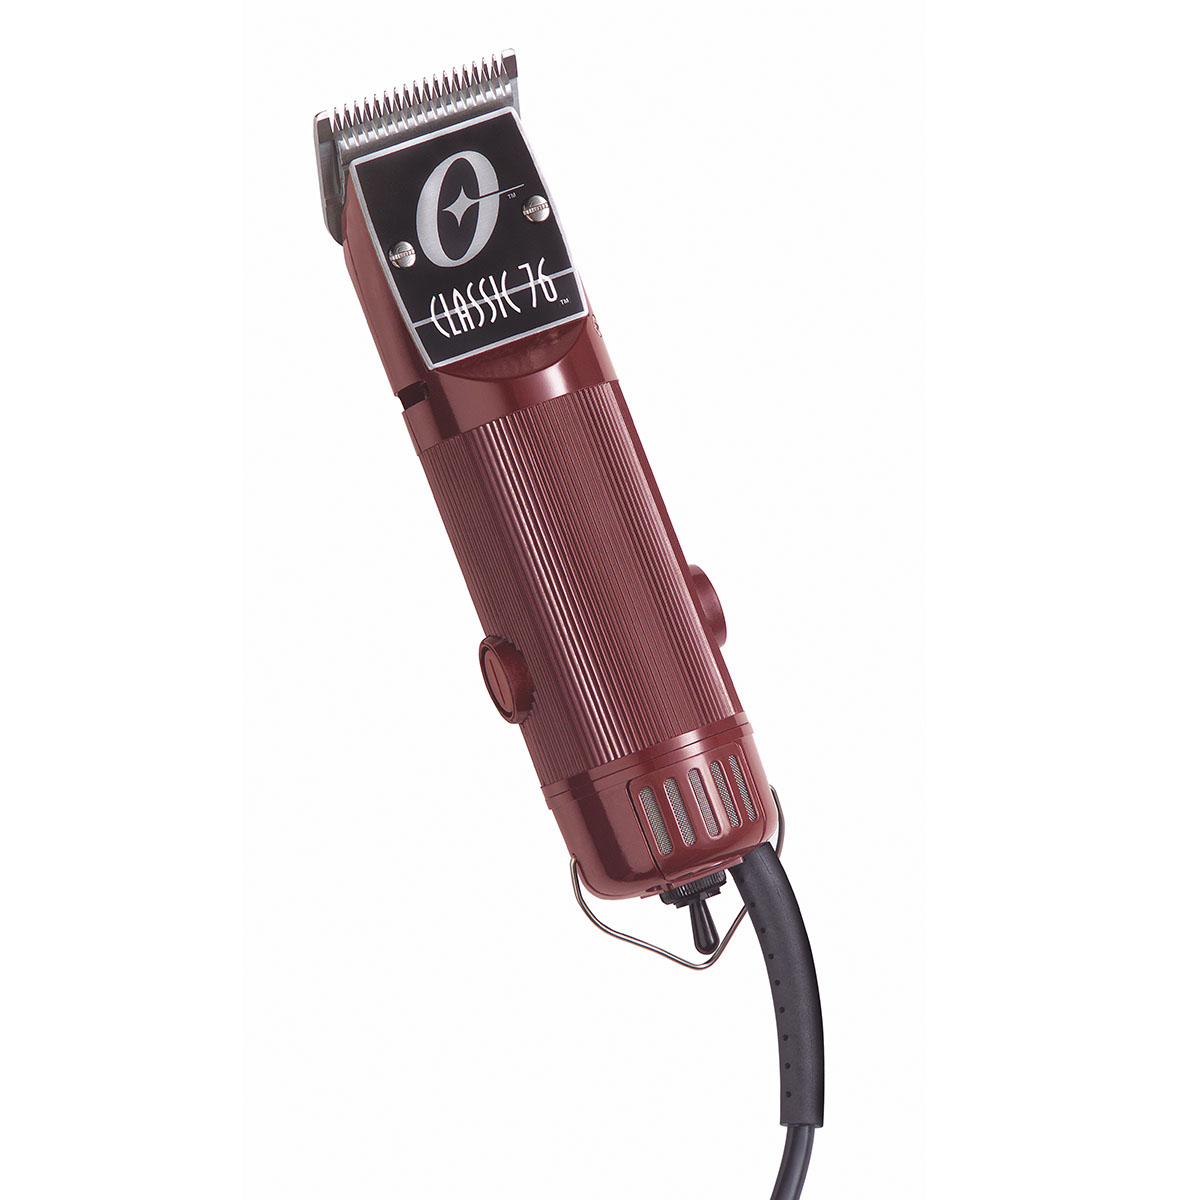 Clipper Repair - We can repair and service all Andis, Oster and Wahl clippers. Most repairs can be done the same day.